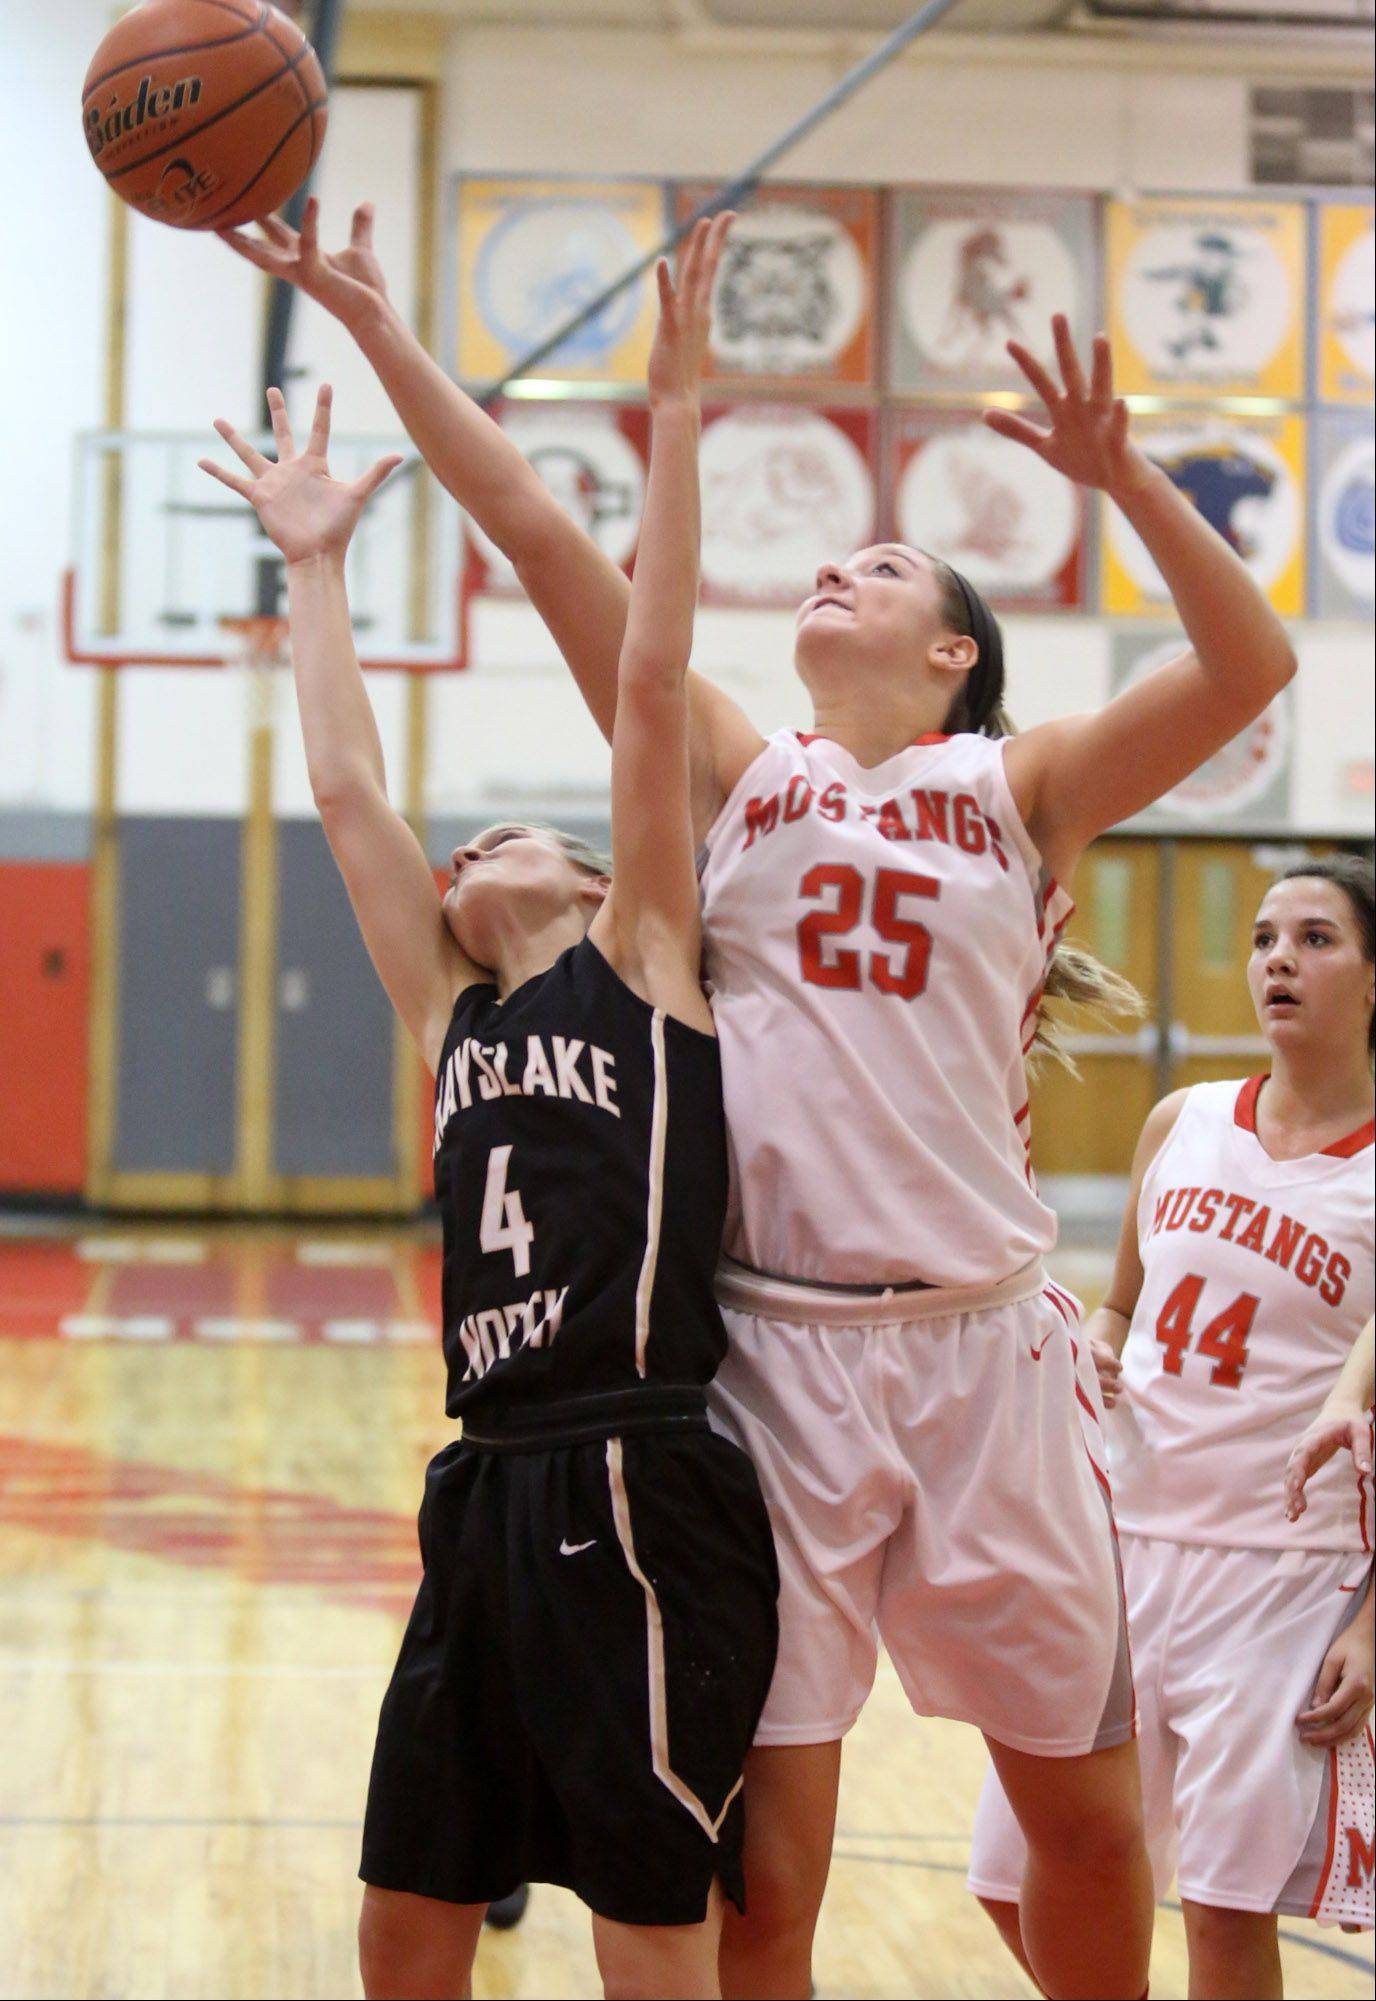 Mundelein's Jamie Hemmer and Grayslake North's Maggie Fish reach for a rebound at Mundelein on Friday.